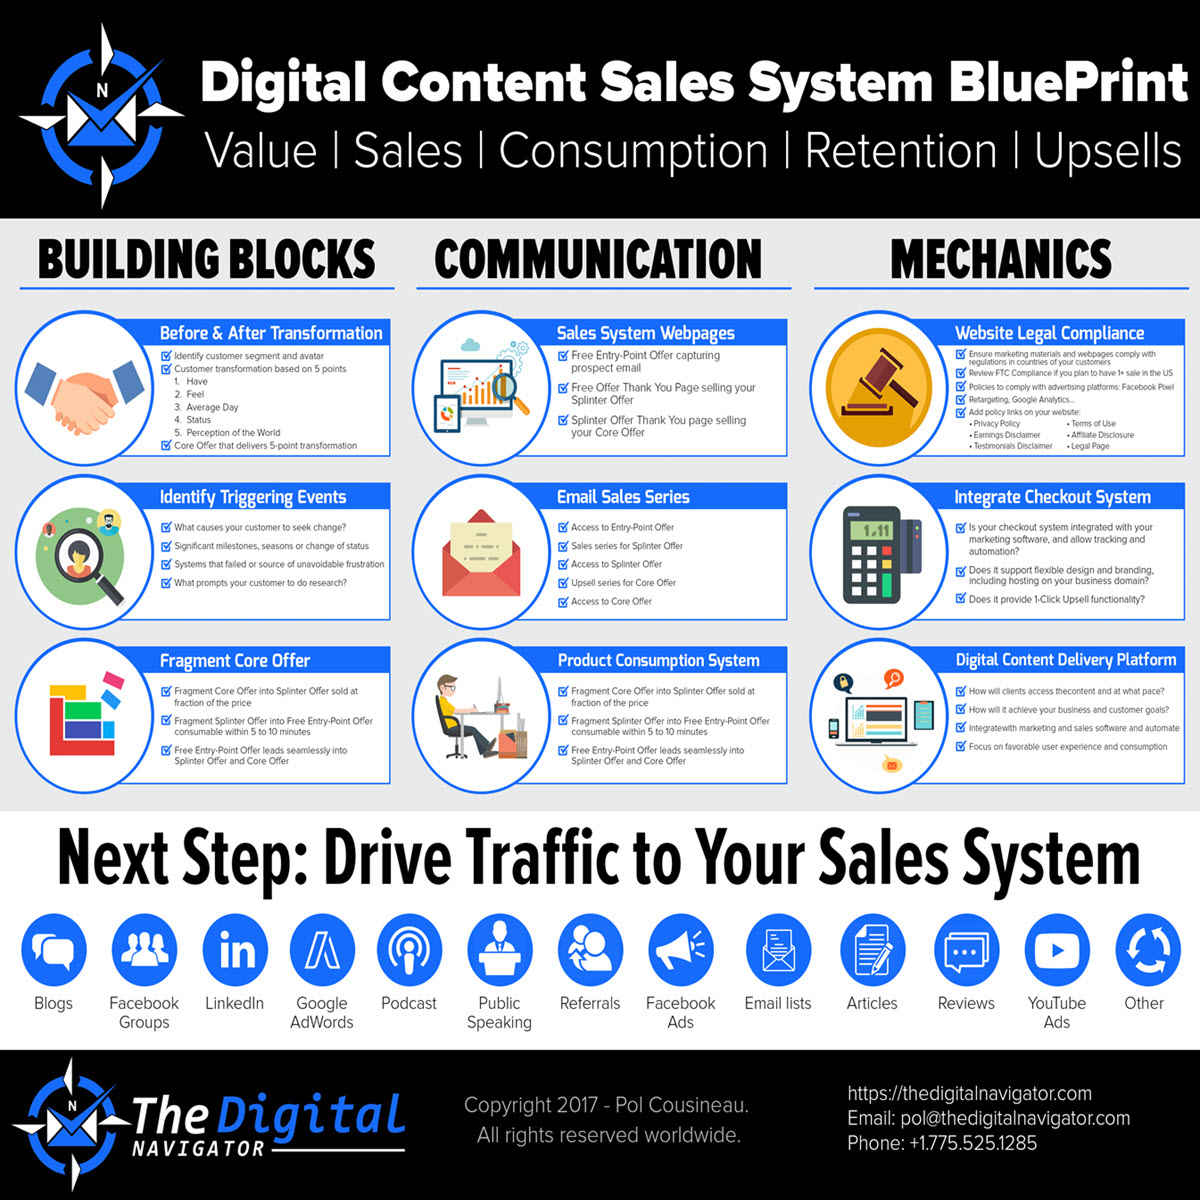 Digital content sales system blueprint course the digital navigator malvernweather Image collections